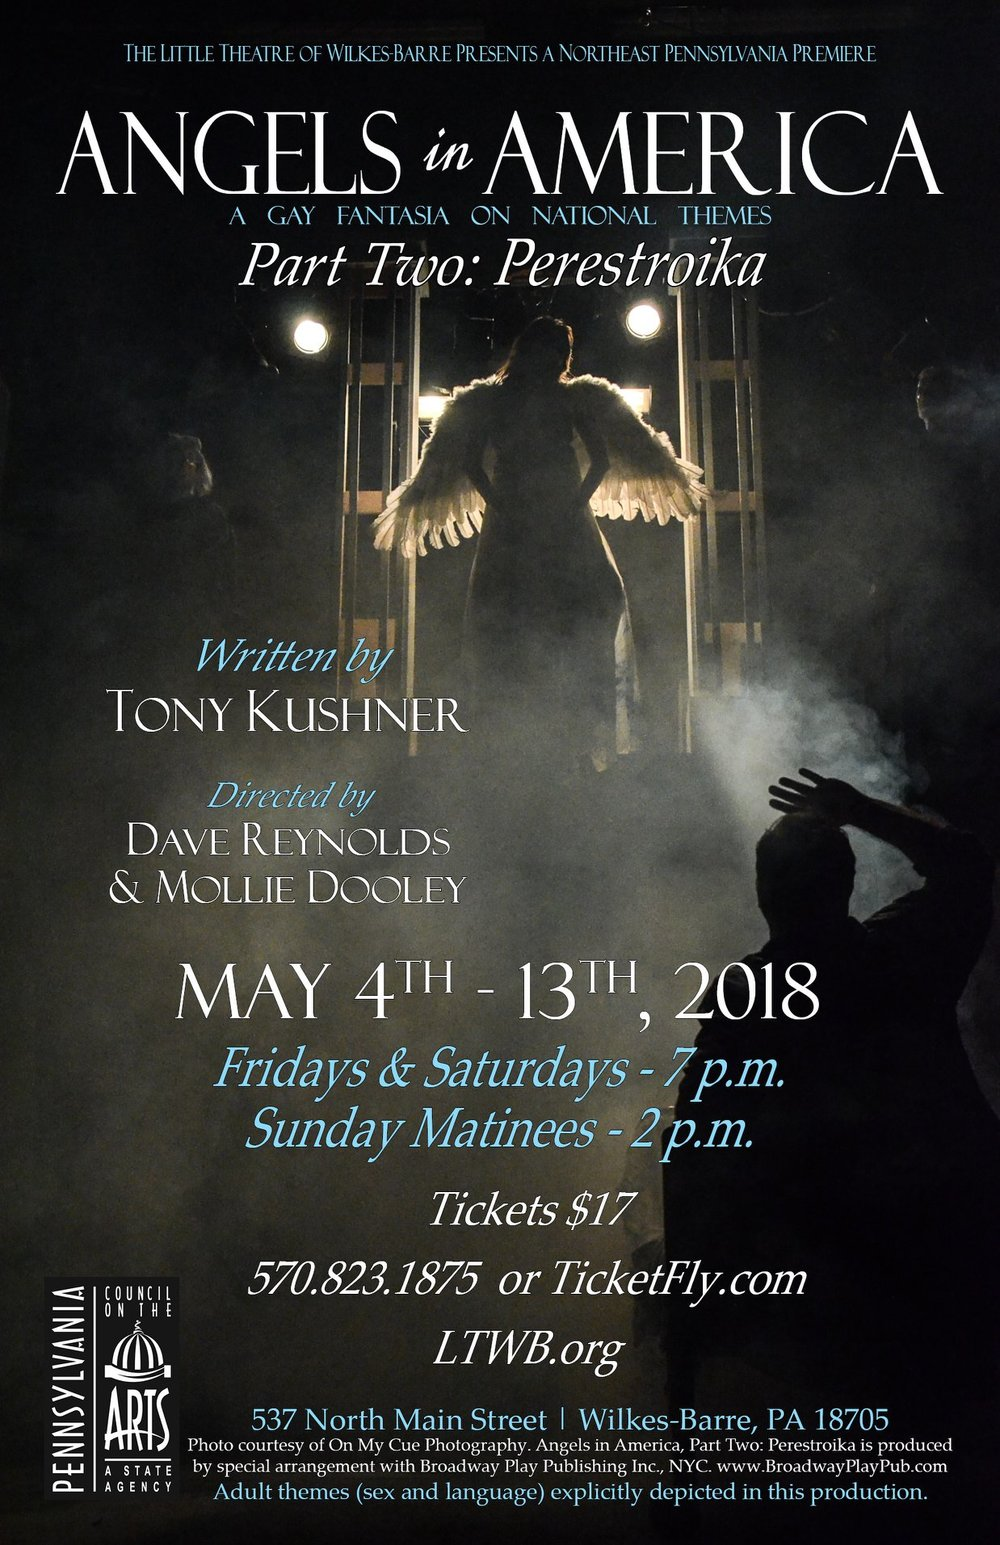 Angels in America: Perestroika - Little Theatre of Wilkes-Barre, Wilkes-Barre, PAPlaywright: Tony KushnerDirectors: Dave Reynolds & Mollie DooleyLighting Designer: Jonathan VojtkoScenic Designer:Steph BurkeCostume Designer:Autumn J. Galka Photography: On My Cue Photography